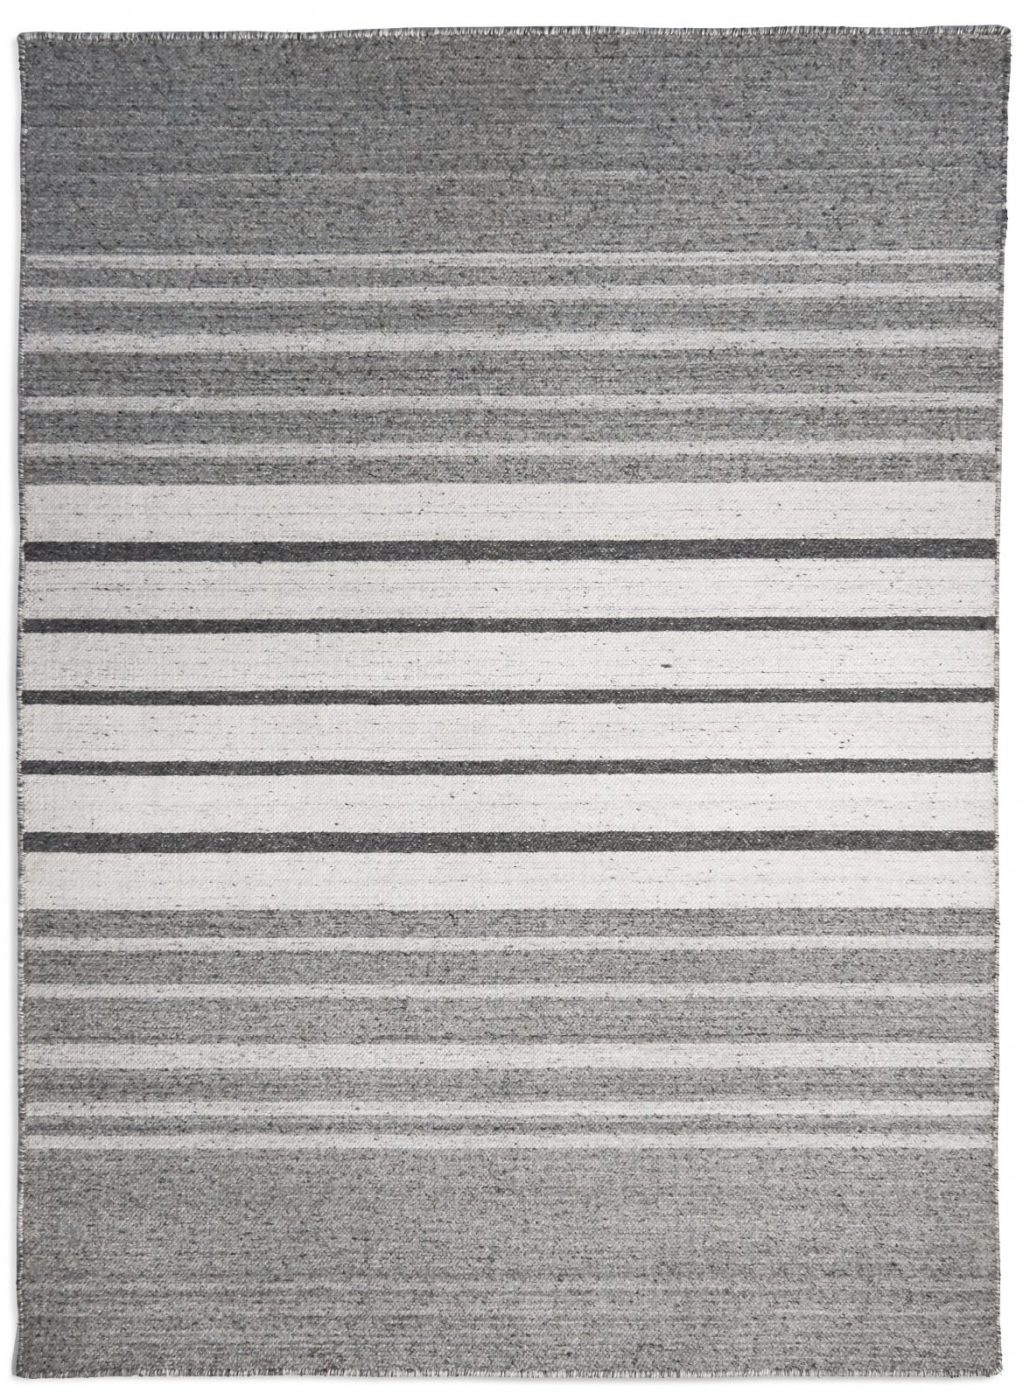 Greyscale GRE03 | Plantation Rug Company | Best at Flooring